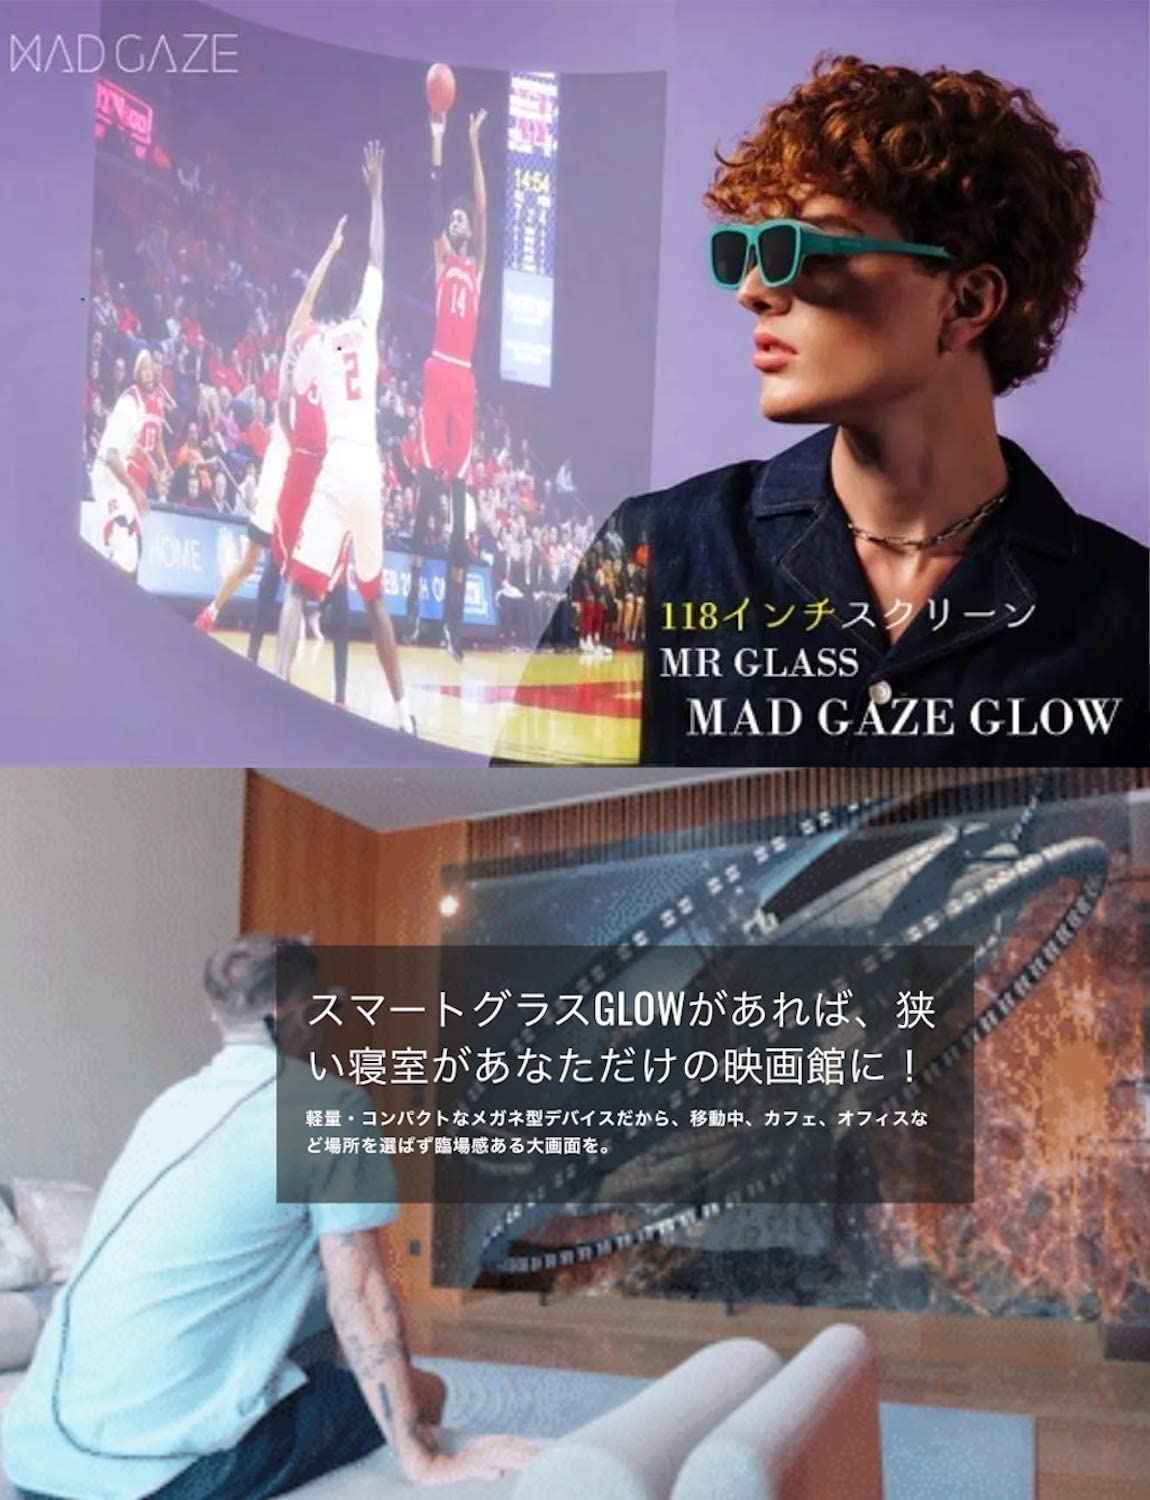 """MAD Gaze Glow Plus - AR MR Binocular Smart Glasses   53° FOV   118"""" Virtual Screen at 1080P HD   Wearable Display   Perfect for Gaming and Turn it into Your Personal Cinema (Lemon)"""